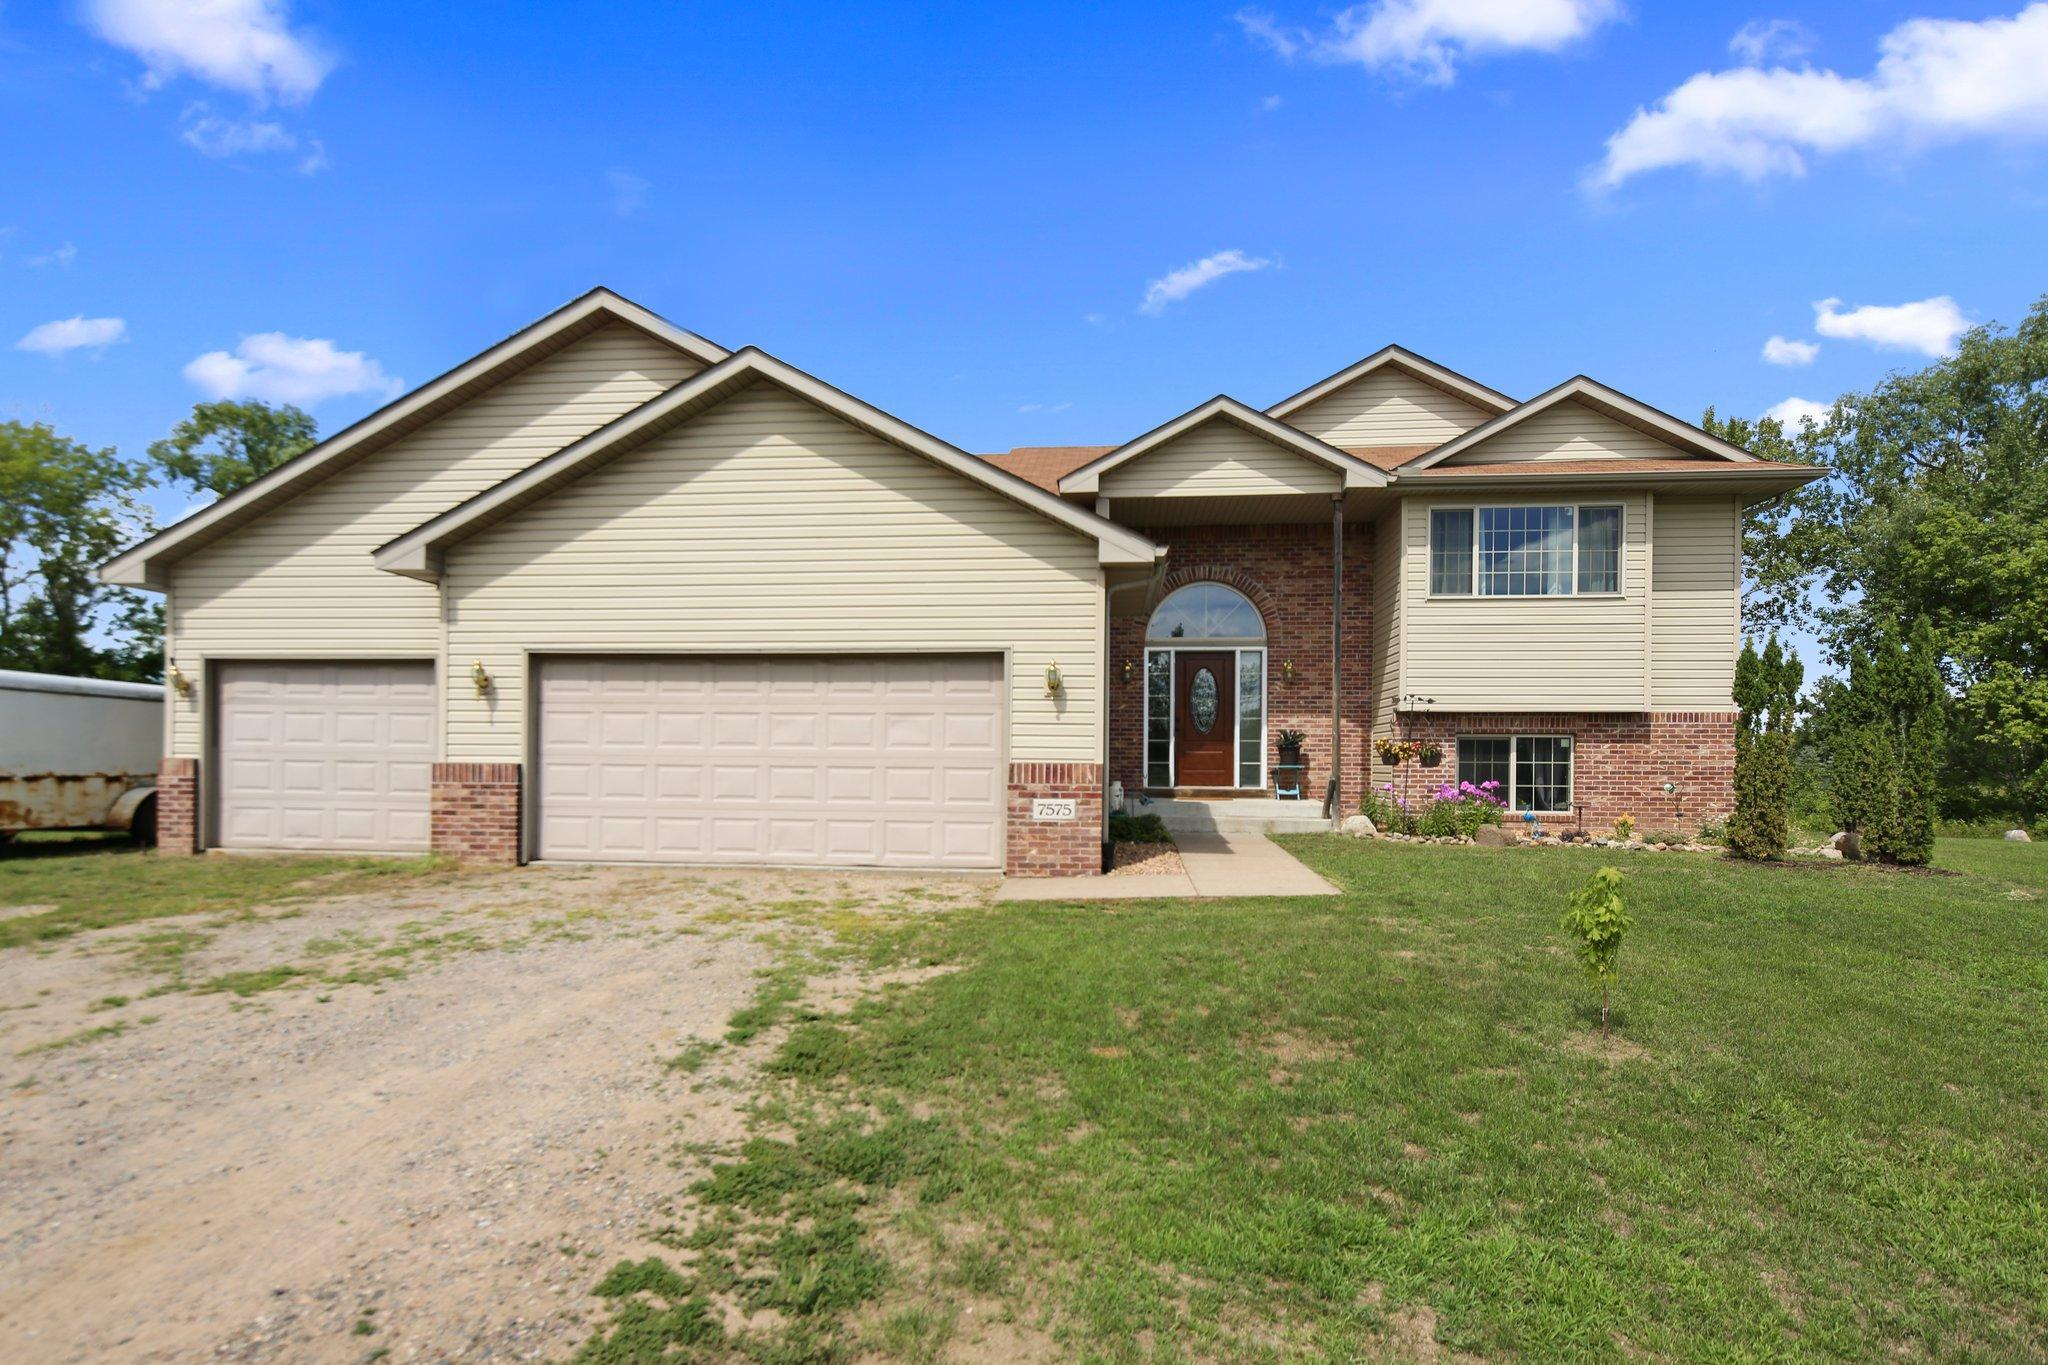 7575 370th Court NW Property Photo - Dalbo, MN real estate listing